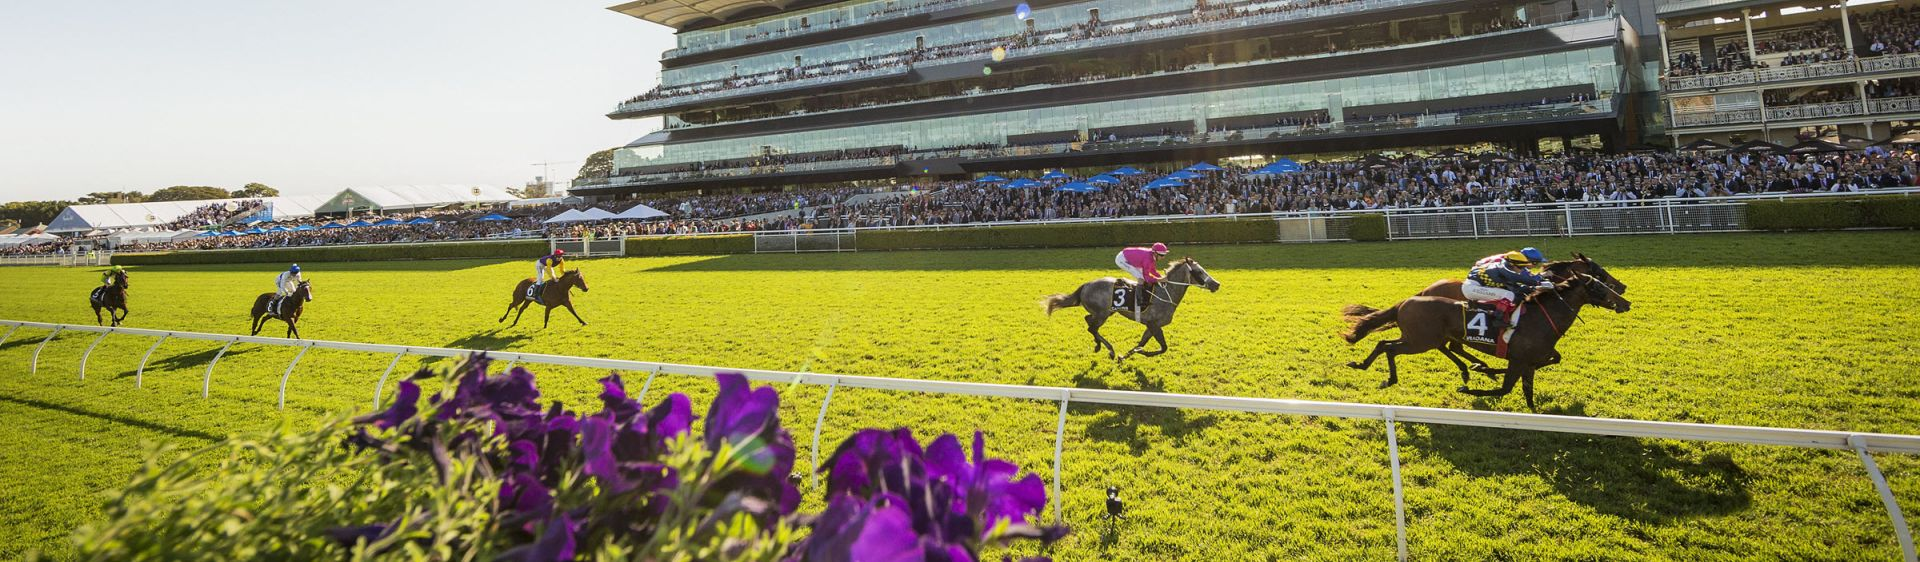 Thoroughbred horses racing at the Championship Races, Royal Randwick